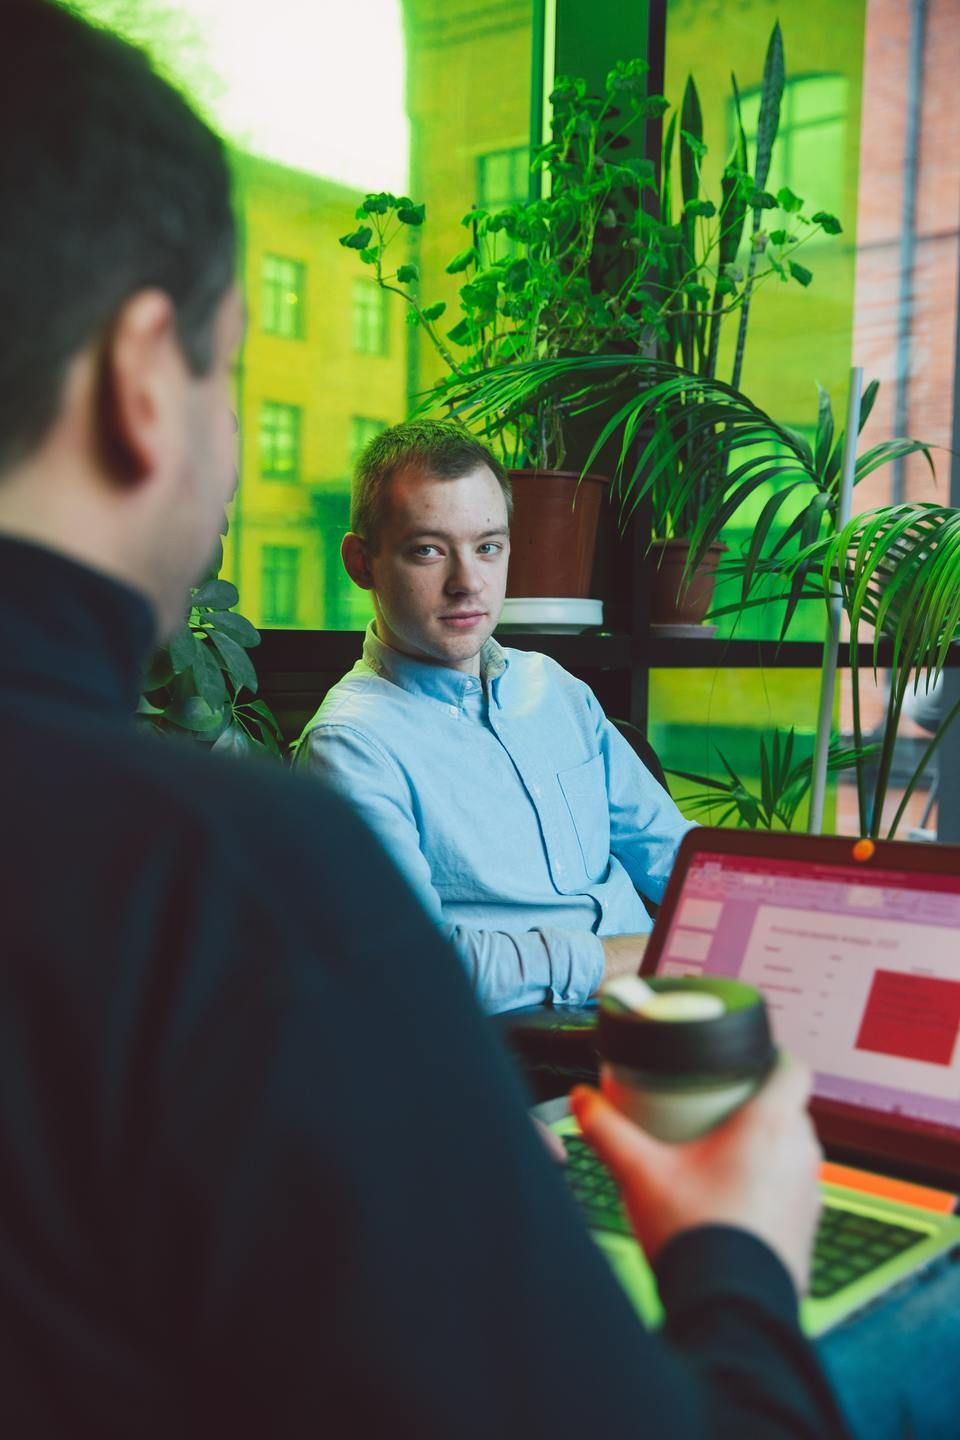 client adding on more work scope in meeting